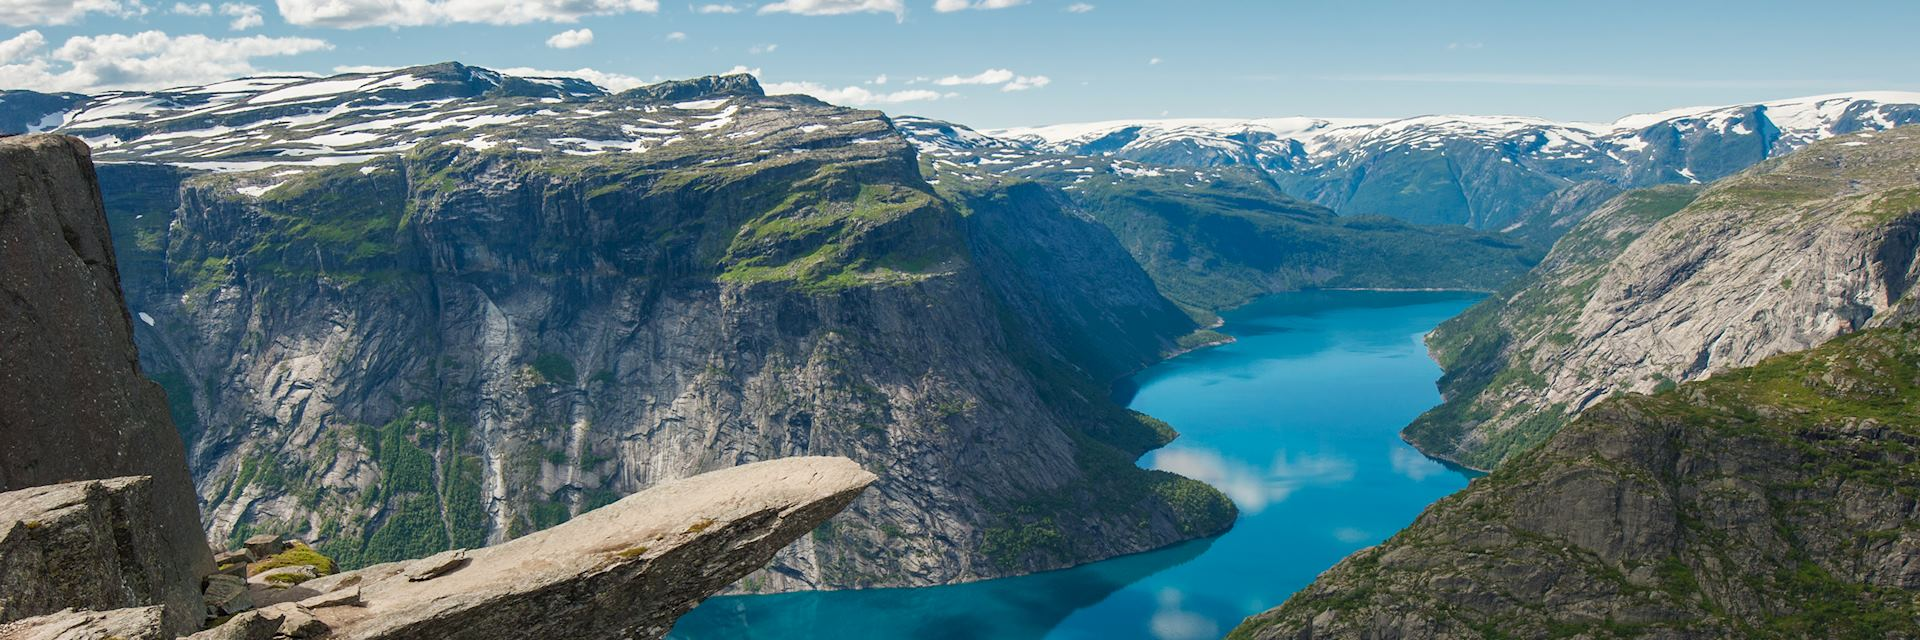 The rock formation of Trolltunga above lake Ringedalsvatnet